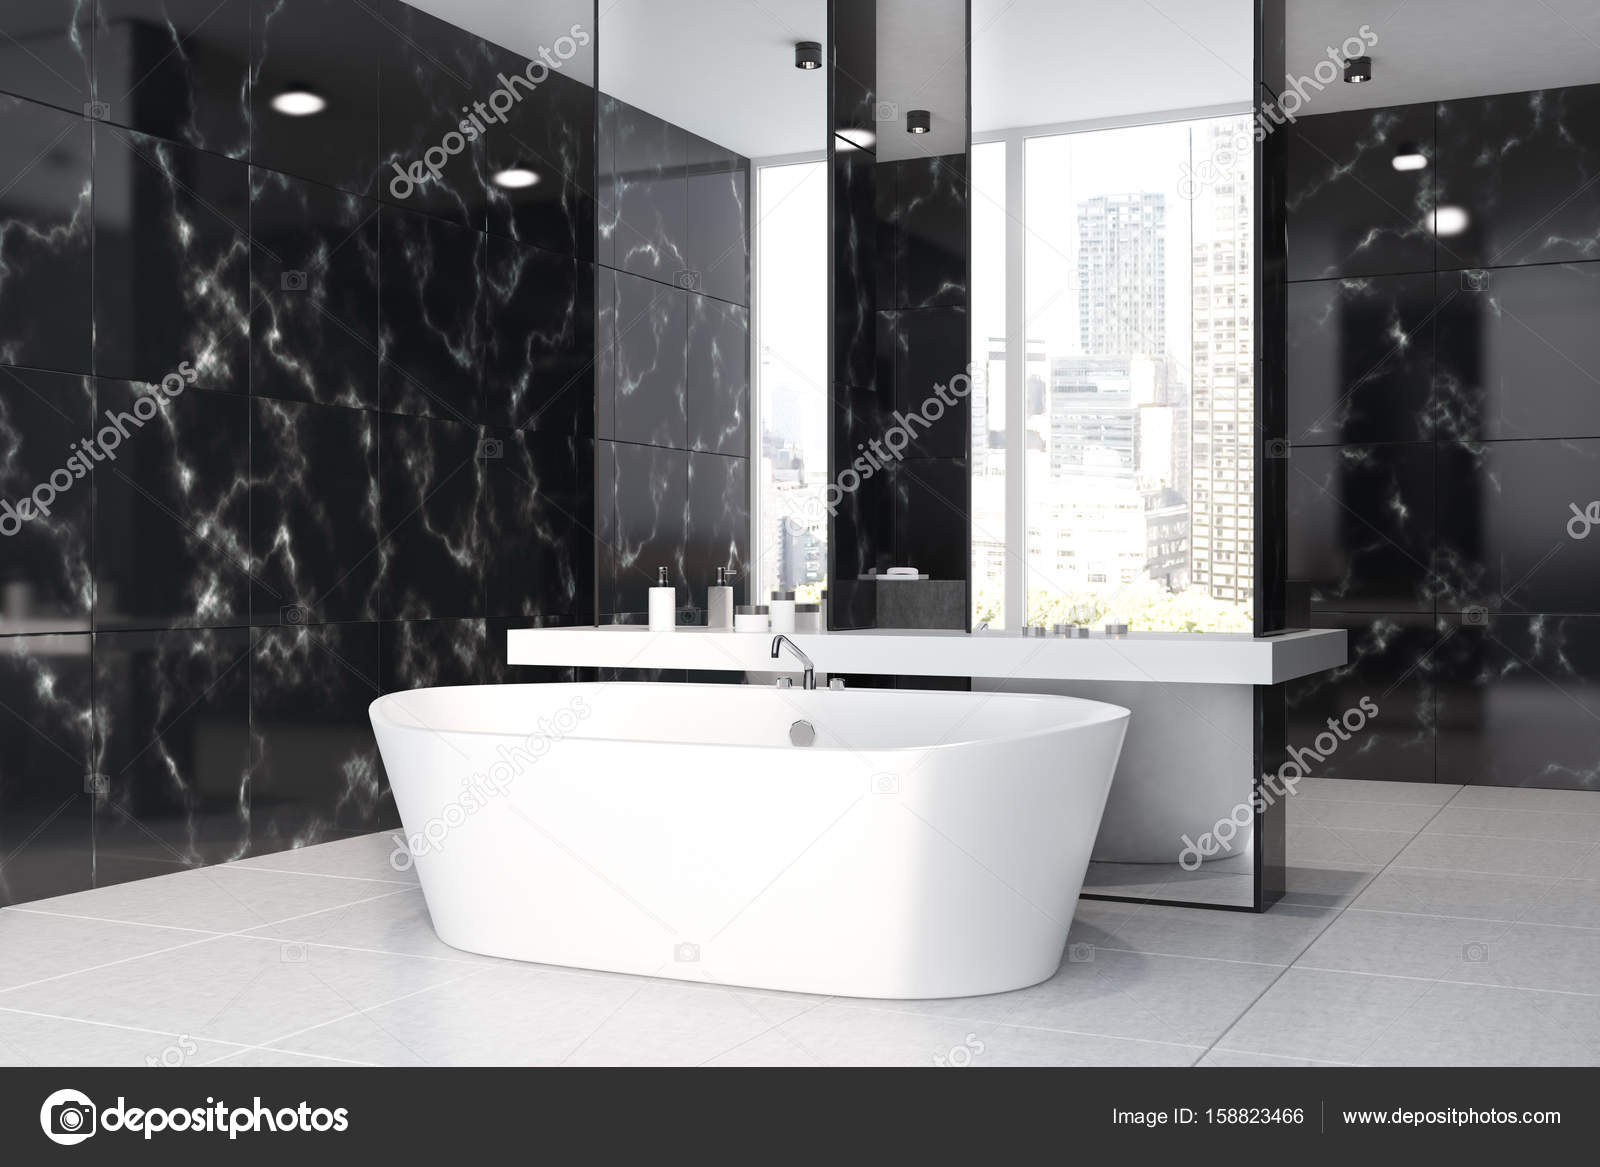 Black Marble Bathroom Interior With A Concrete Floor, A Double Sink, A Tub  And Two Mirrors On Columns. Side View. 3d Rendering Mock Up U2014 Photo By ...